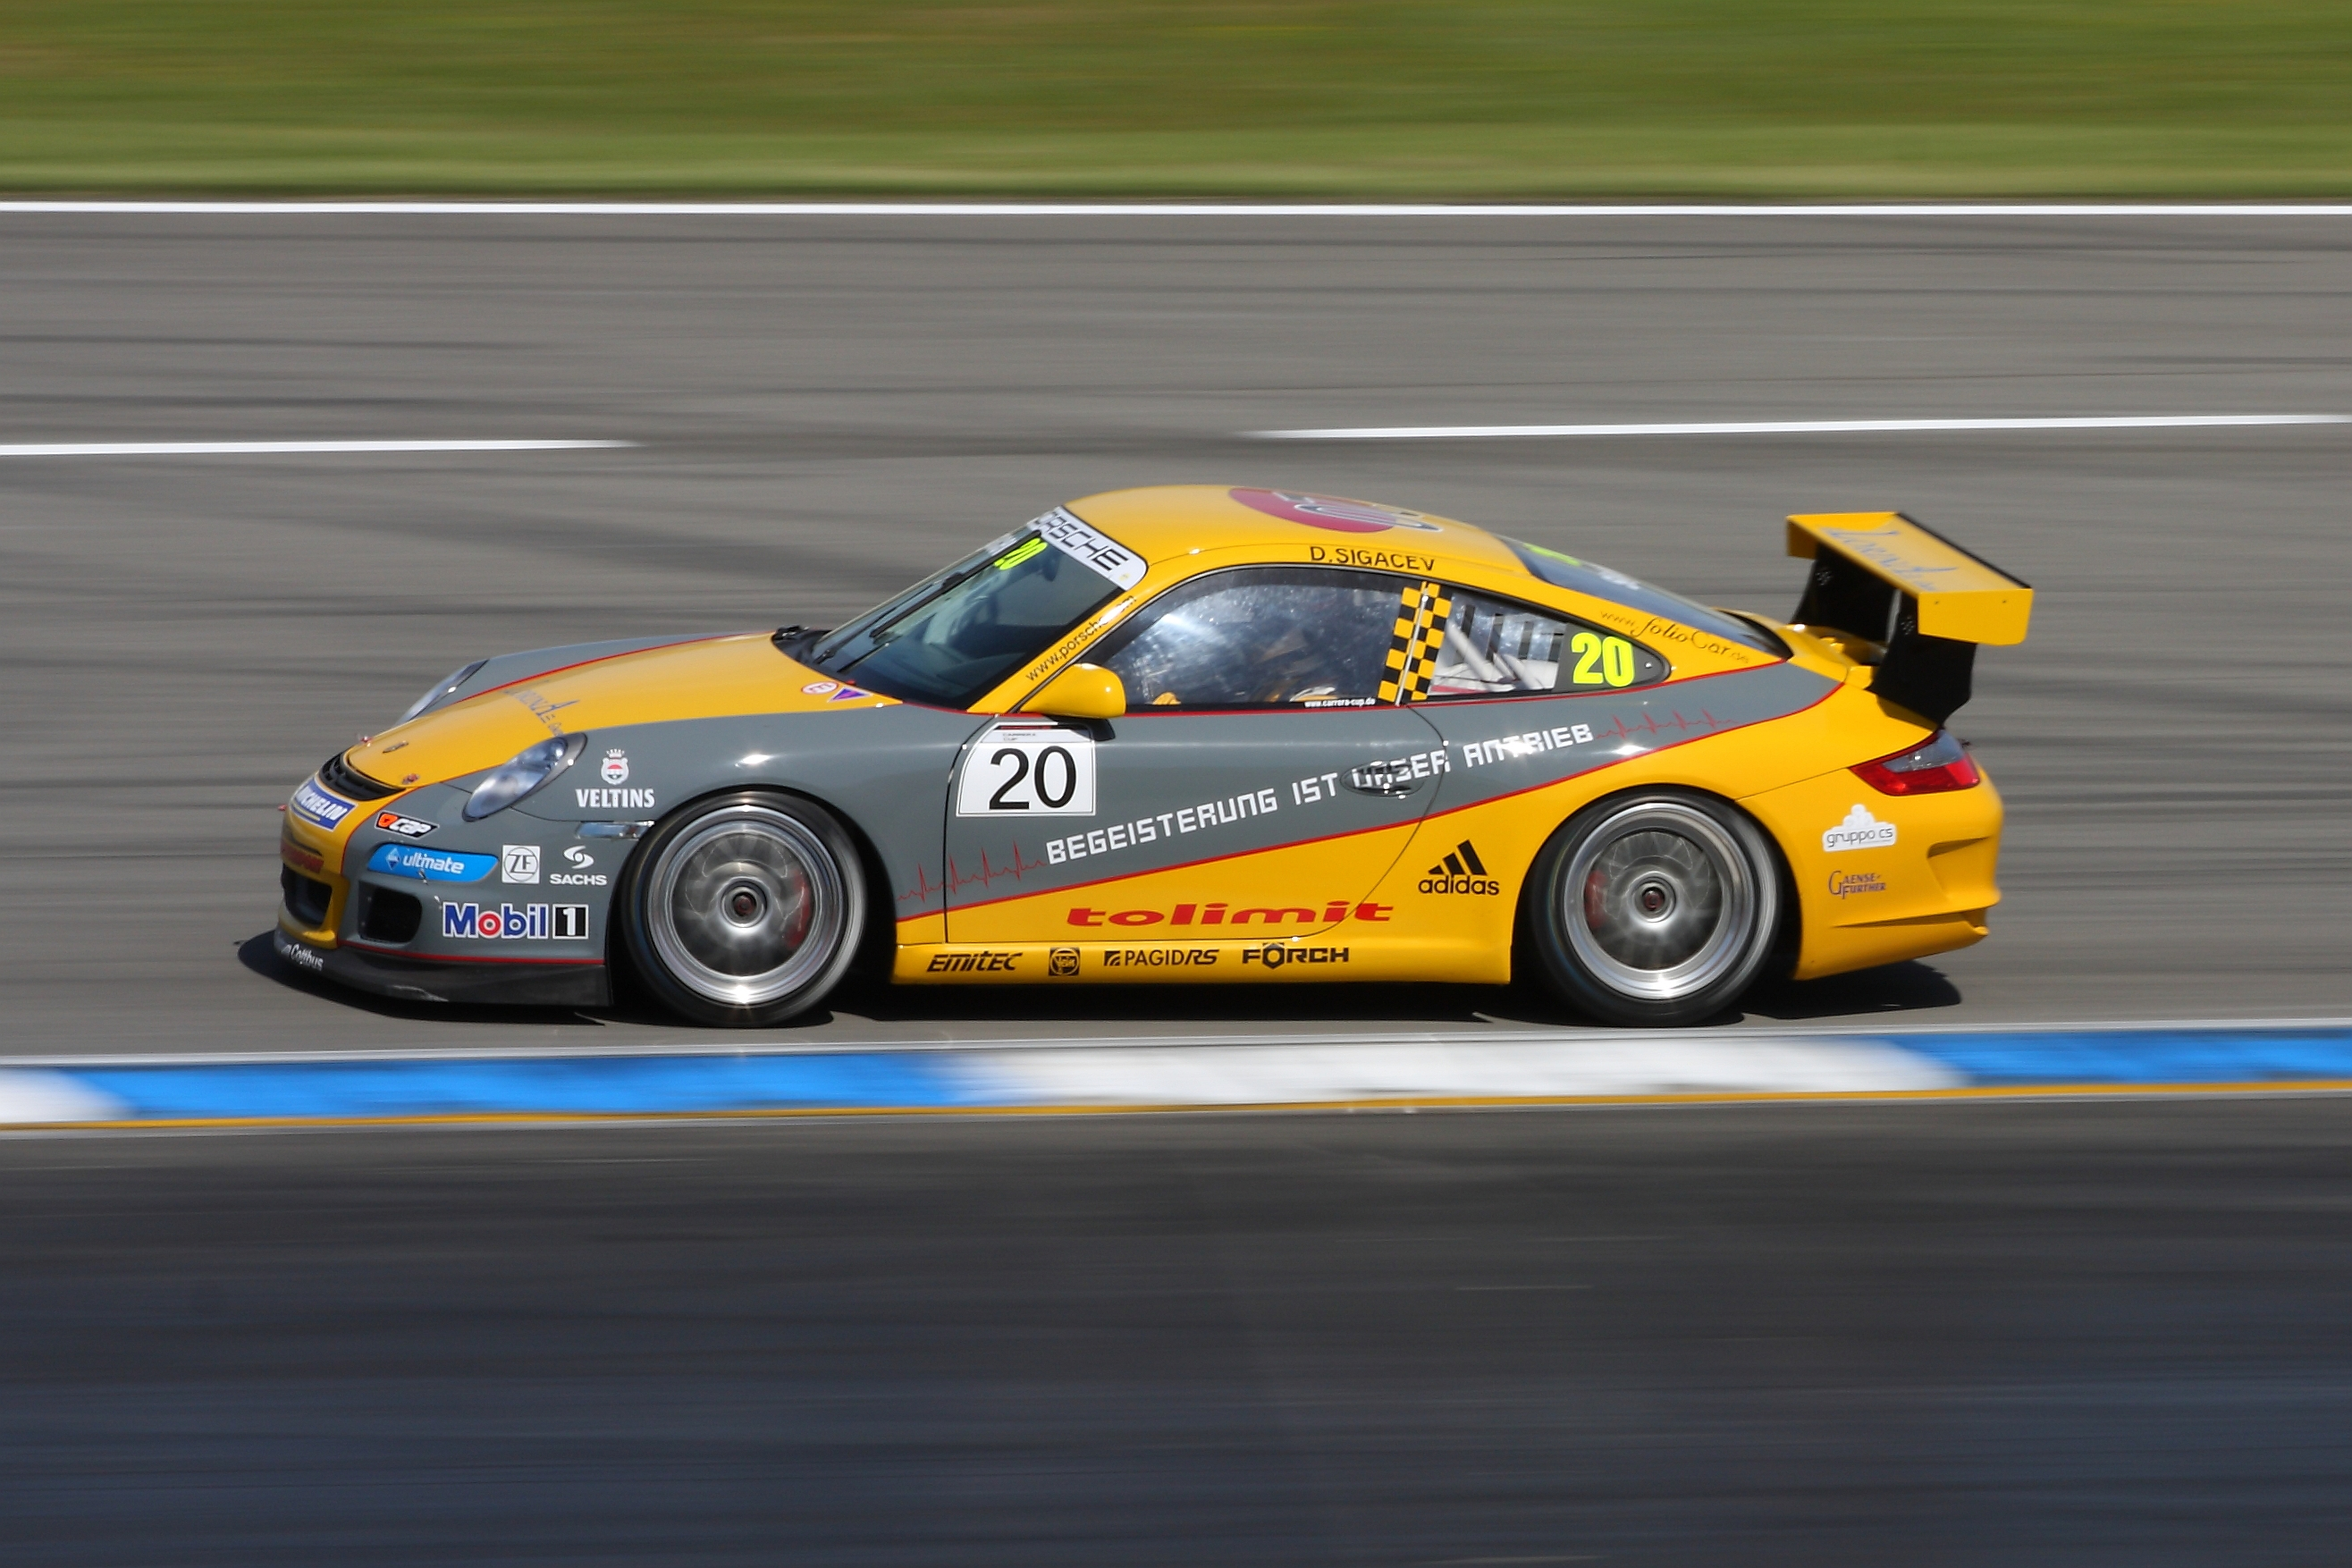 File:Porsche race car 2009 Sigacev.jpg - Wikimedia Commons